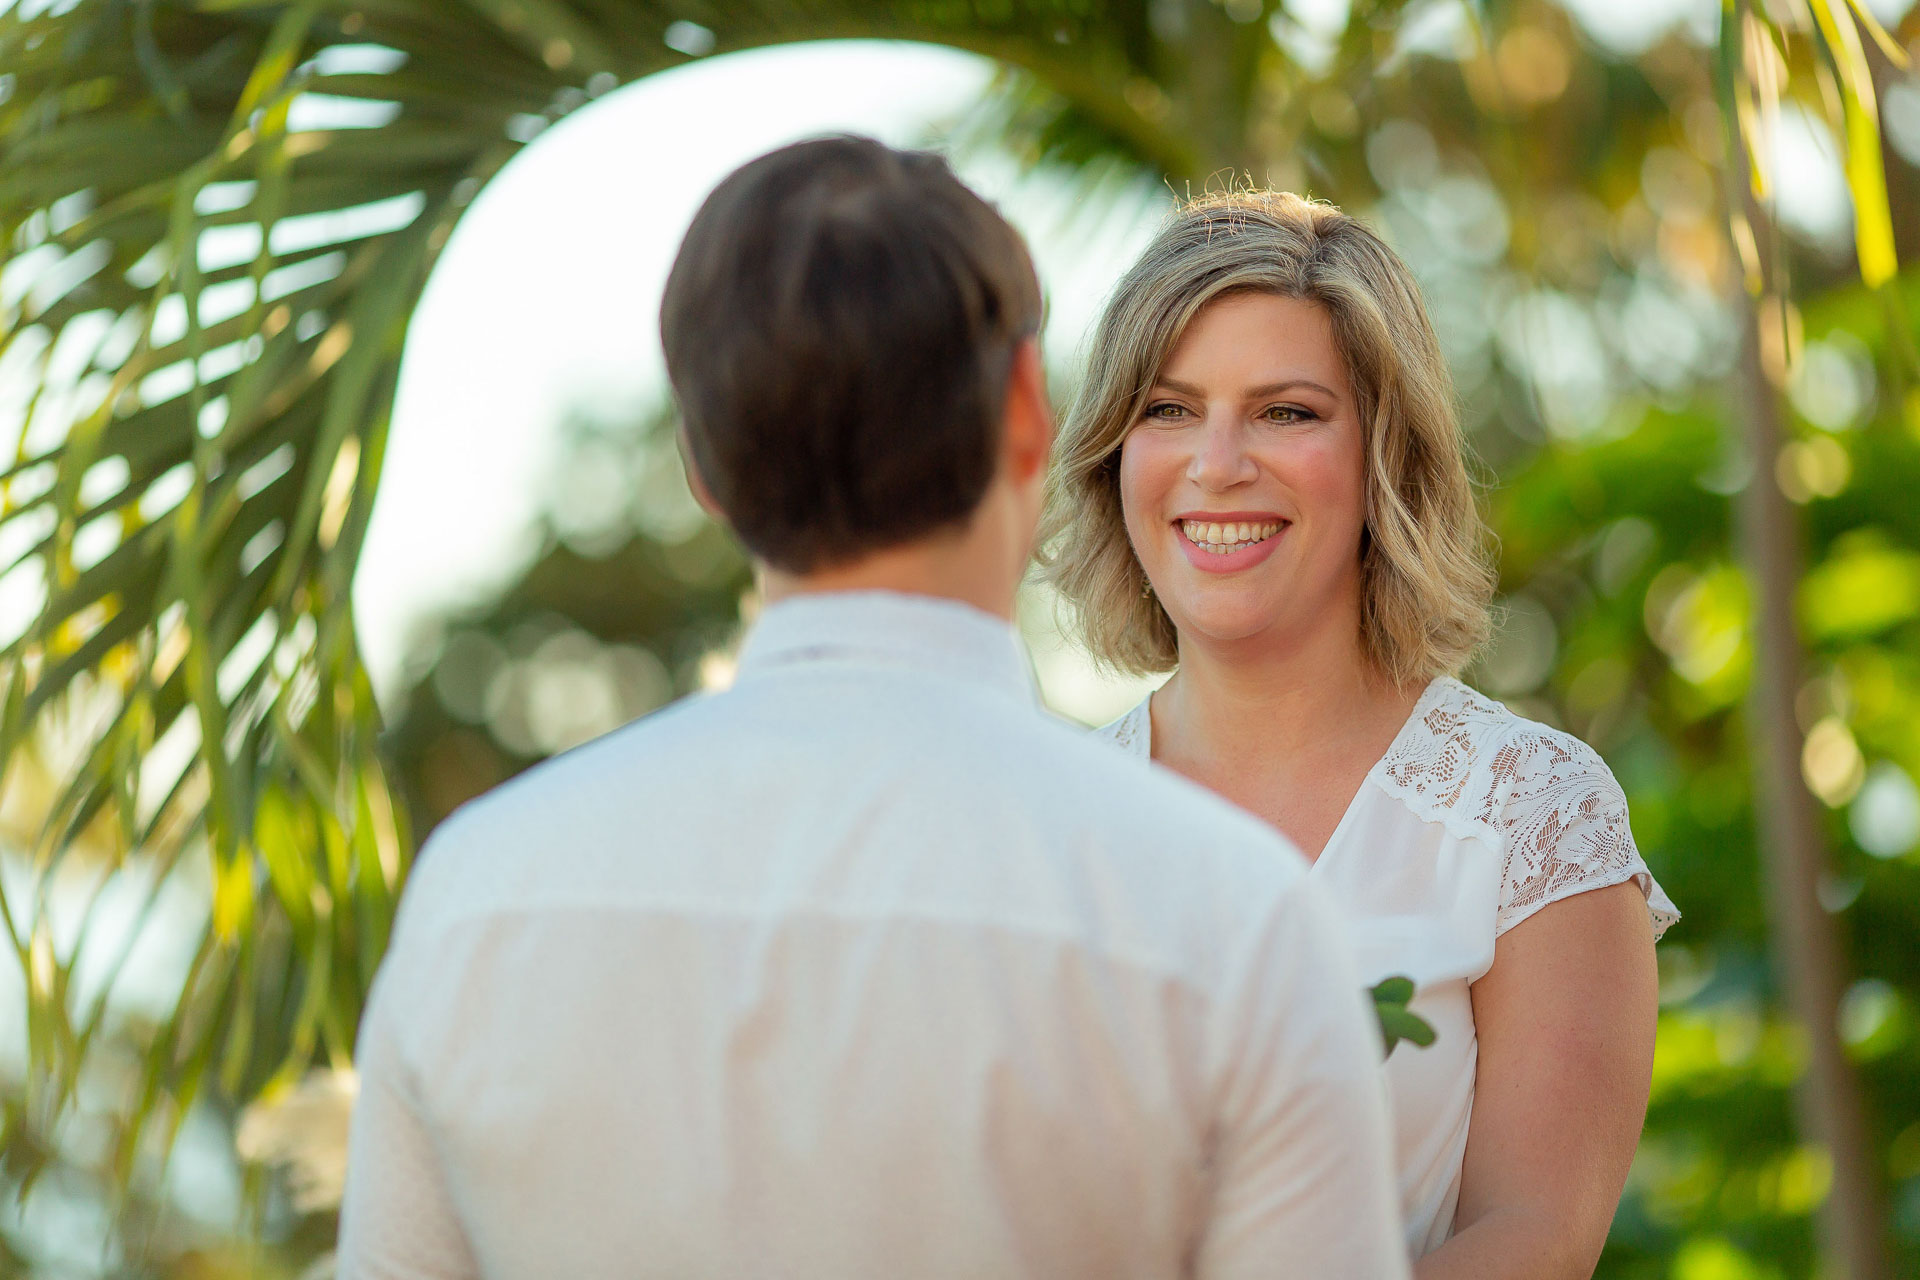 Costa Rica Destination Wedding Photographers | The bride smiles with joy during the wedding ceremony